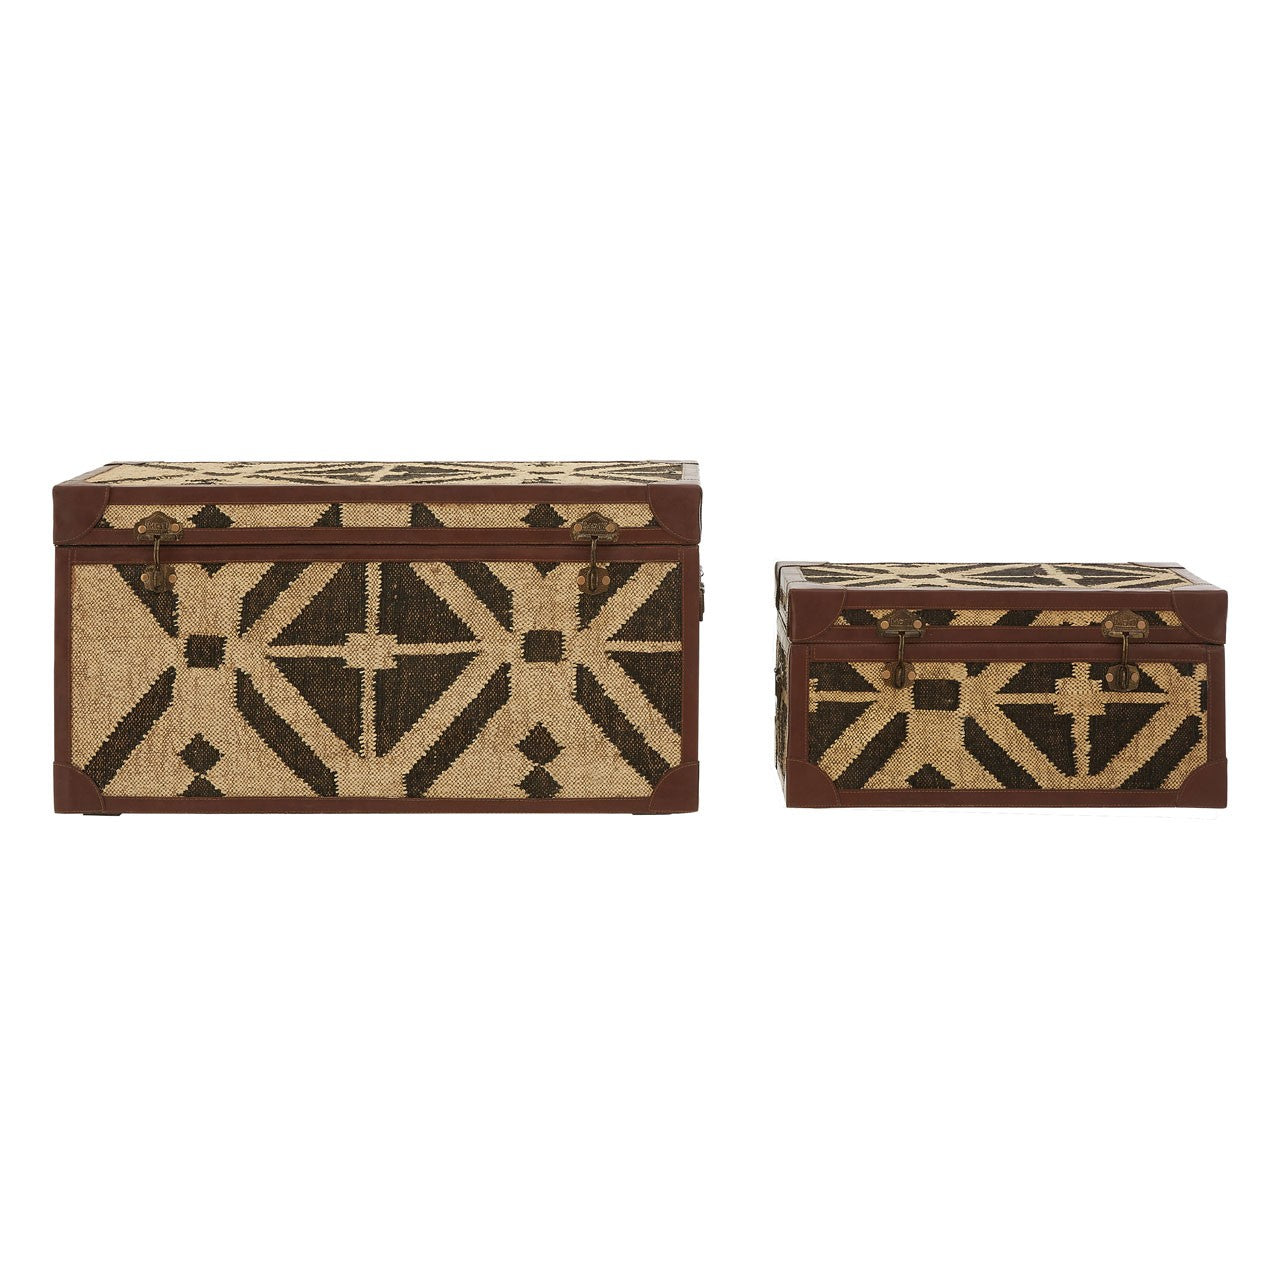 Aztec Storage Trunks (Set Of 2)